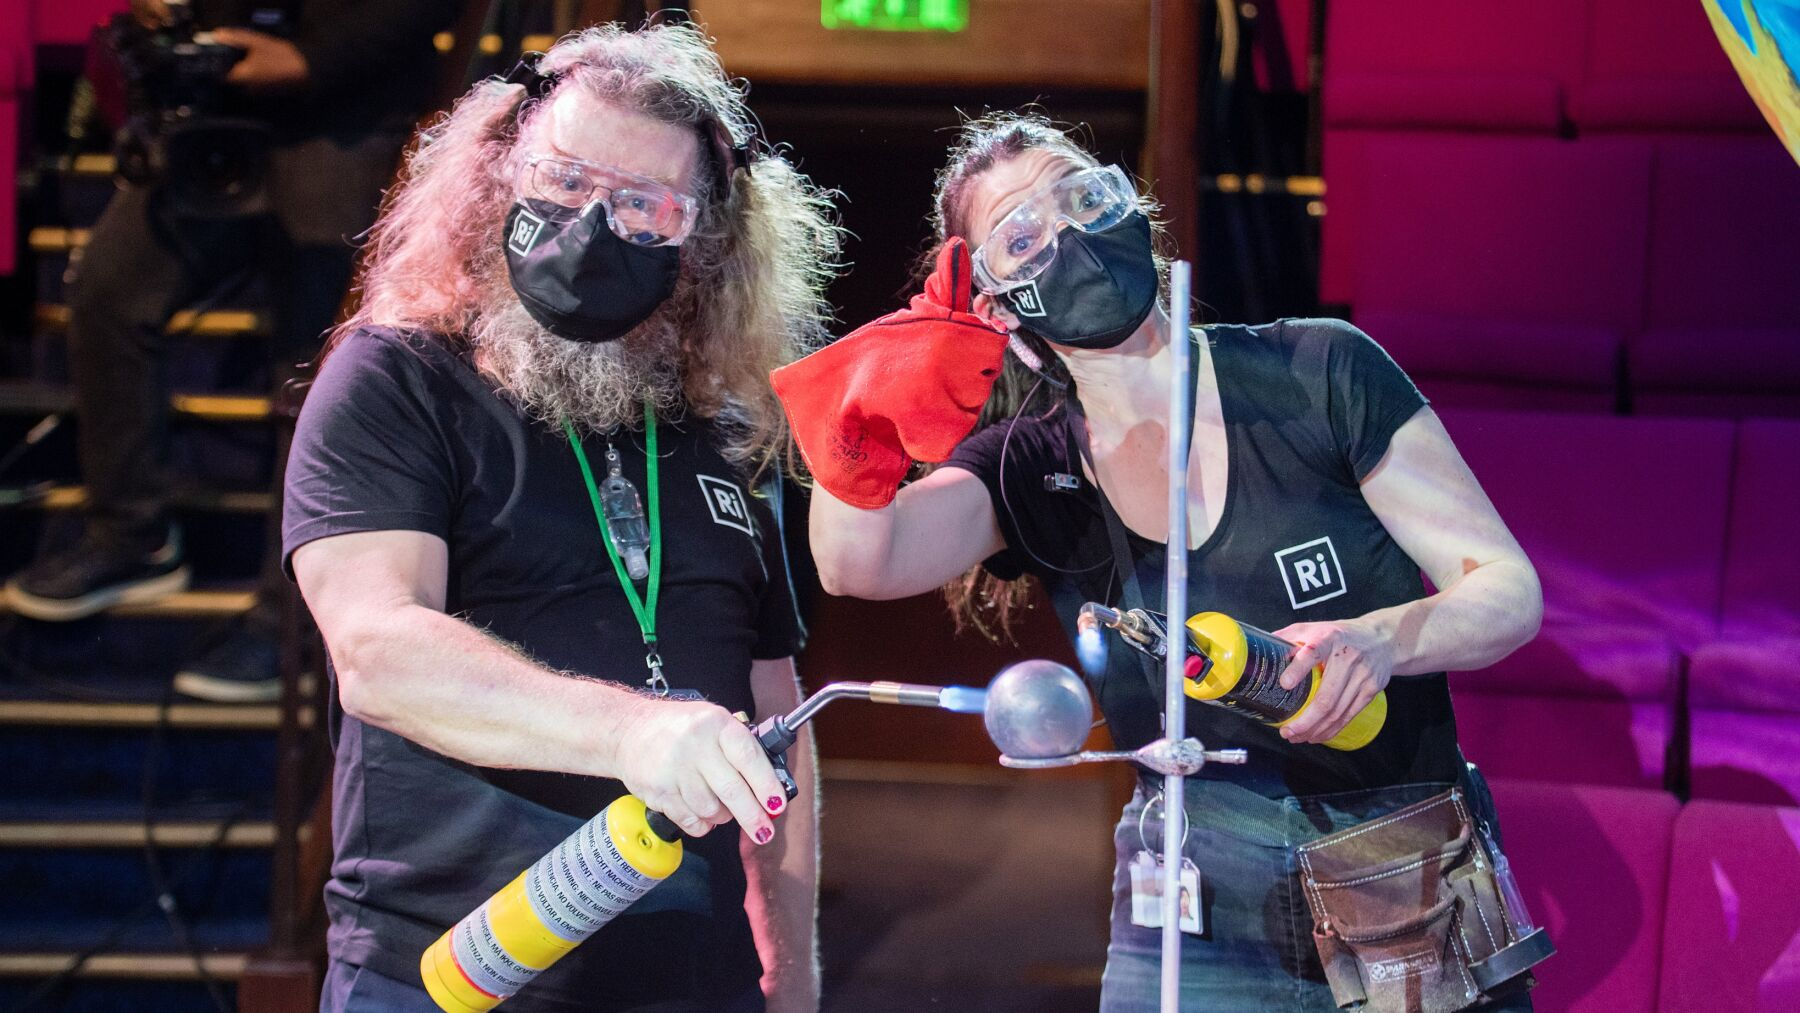 Malcolm with fellow RI participant Fran Scott. Both are holding blow torches towards a cannon ball, and wearing face masks.